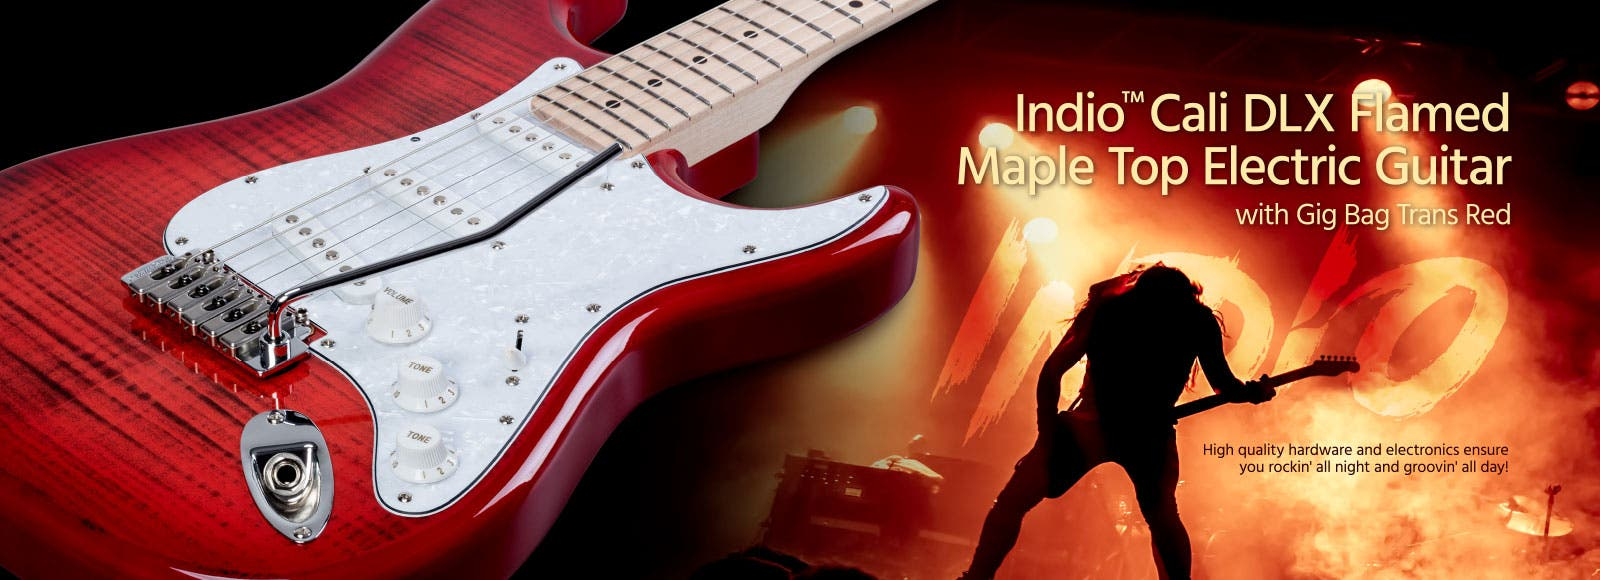 Indio Cali DLX Flamed Maple Top Electric Guitar